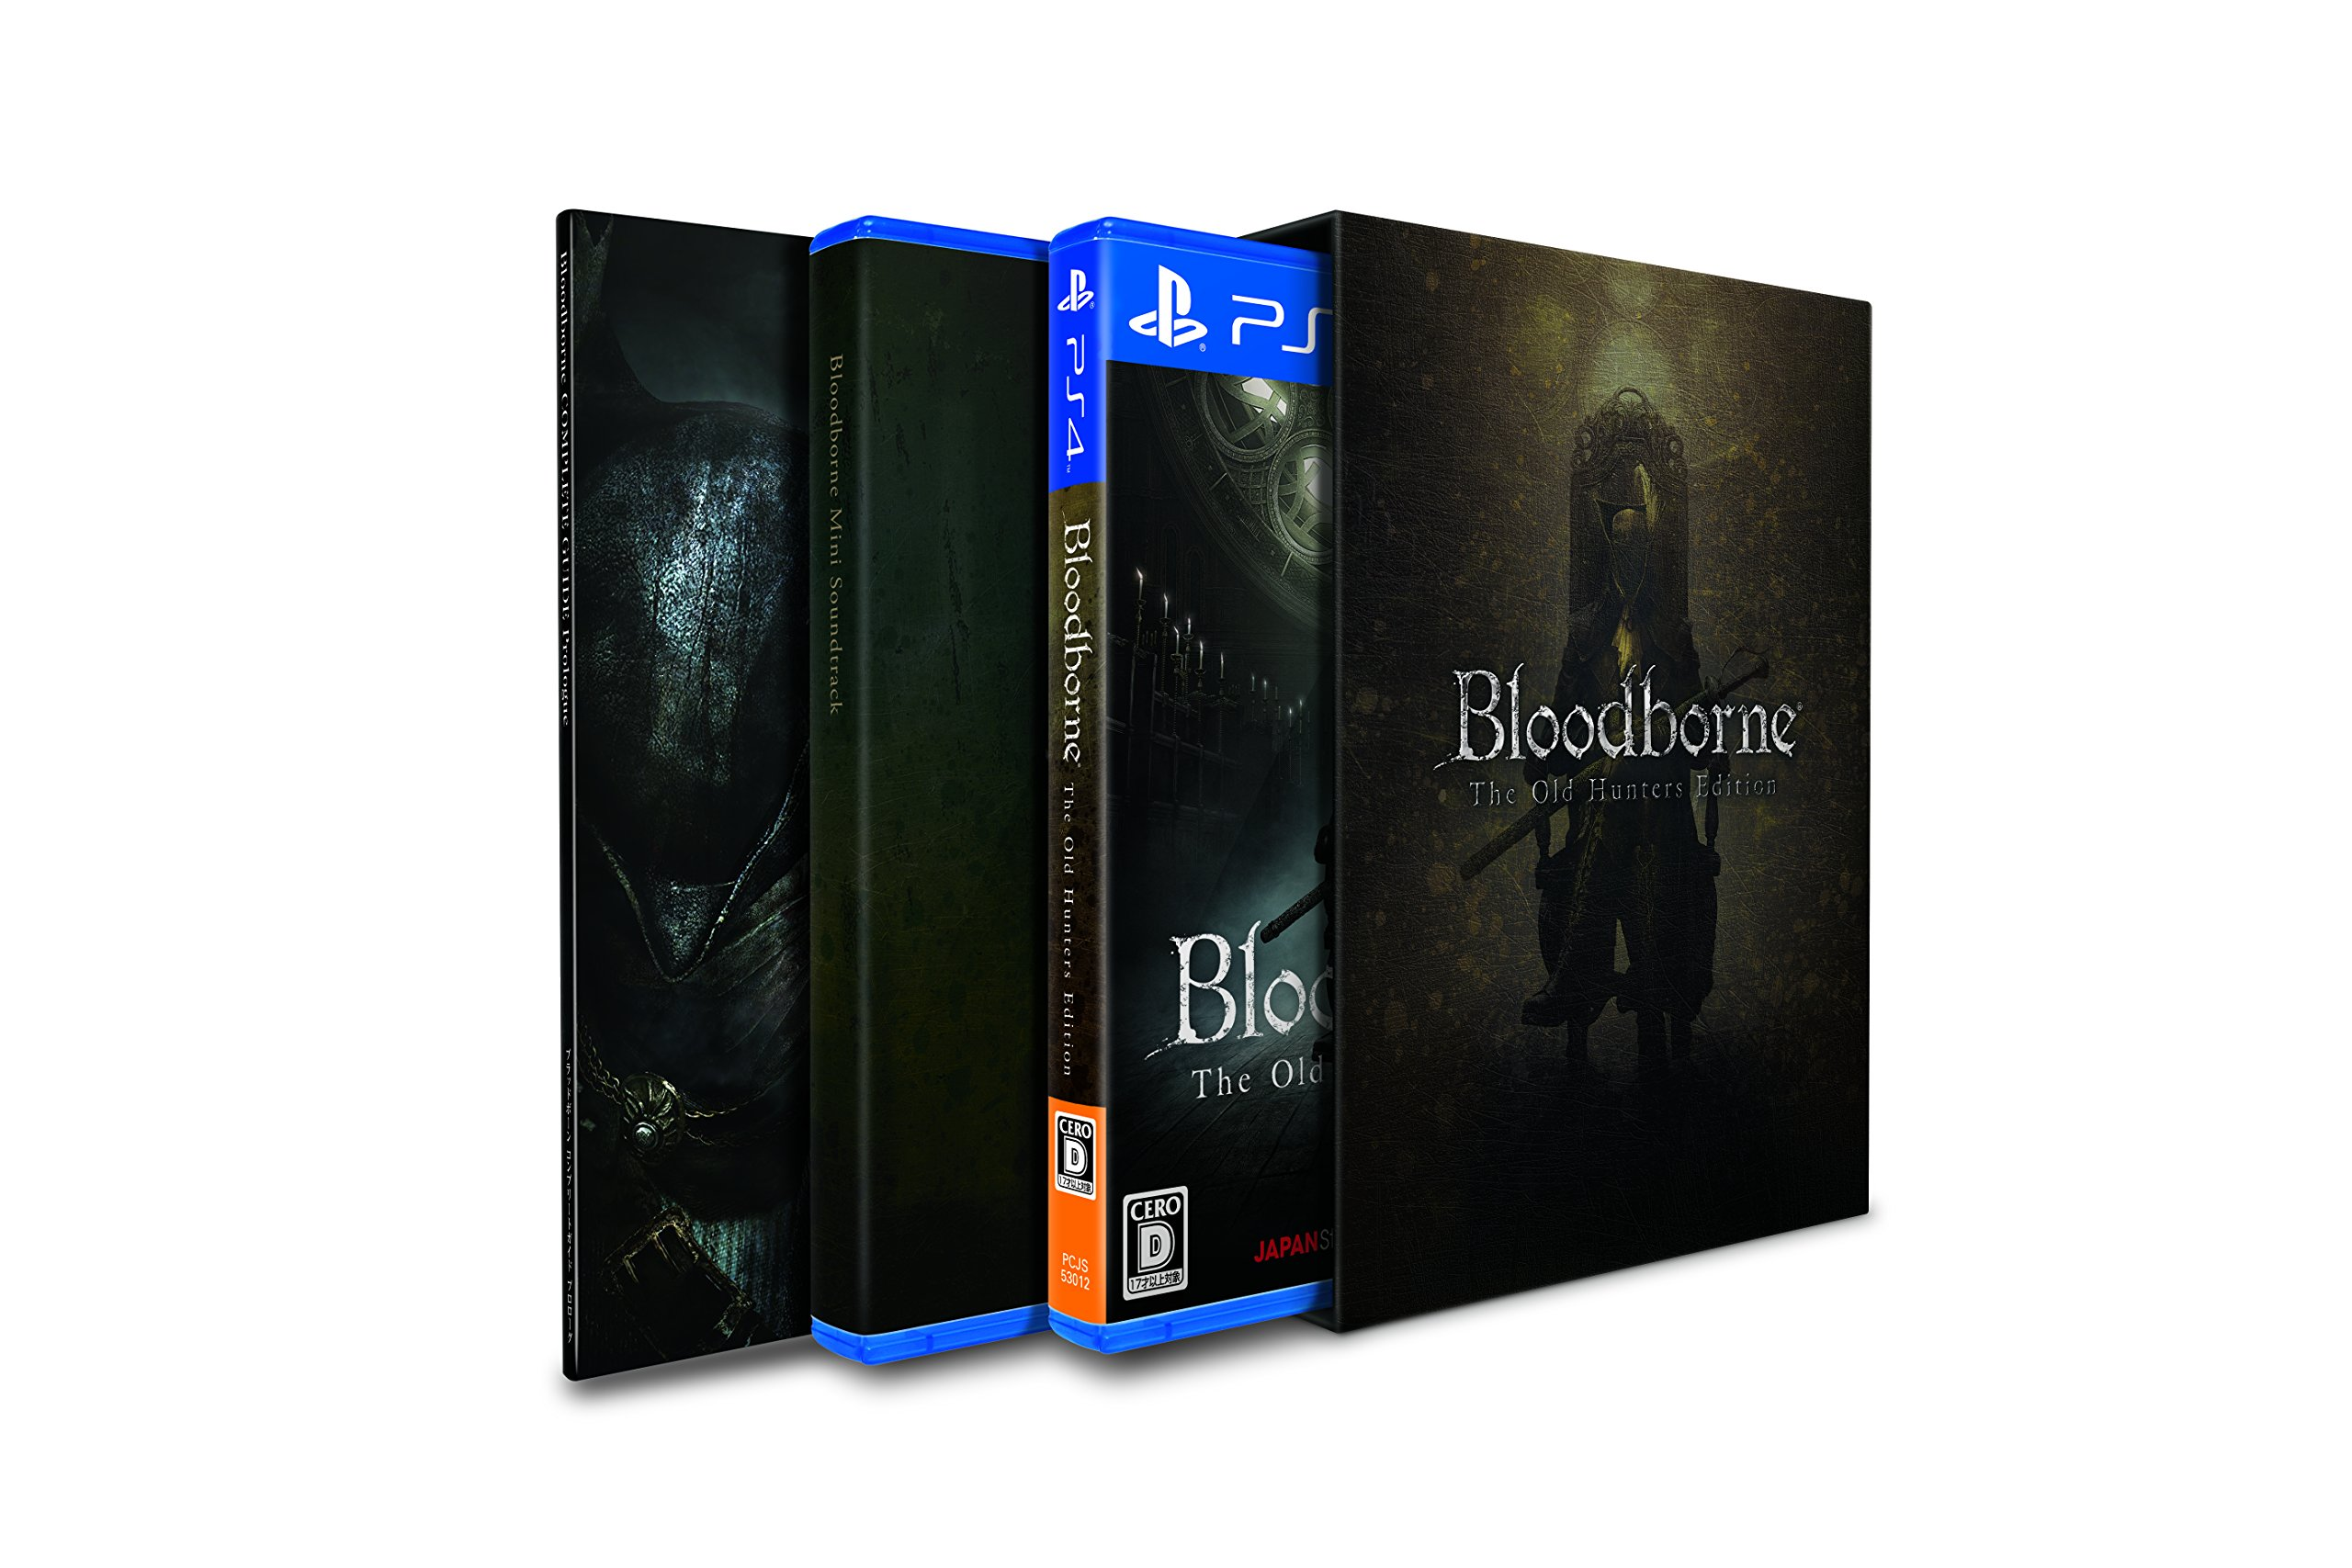 Bloodborne The Old Hunters Edition (Japan Version)